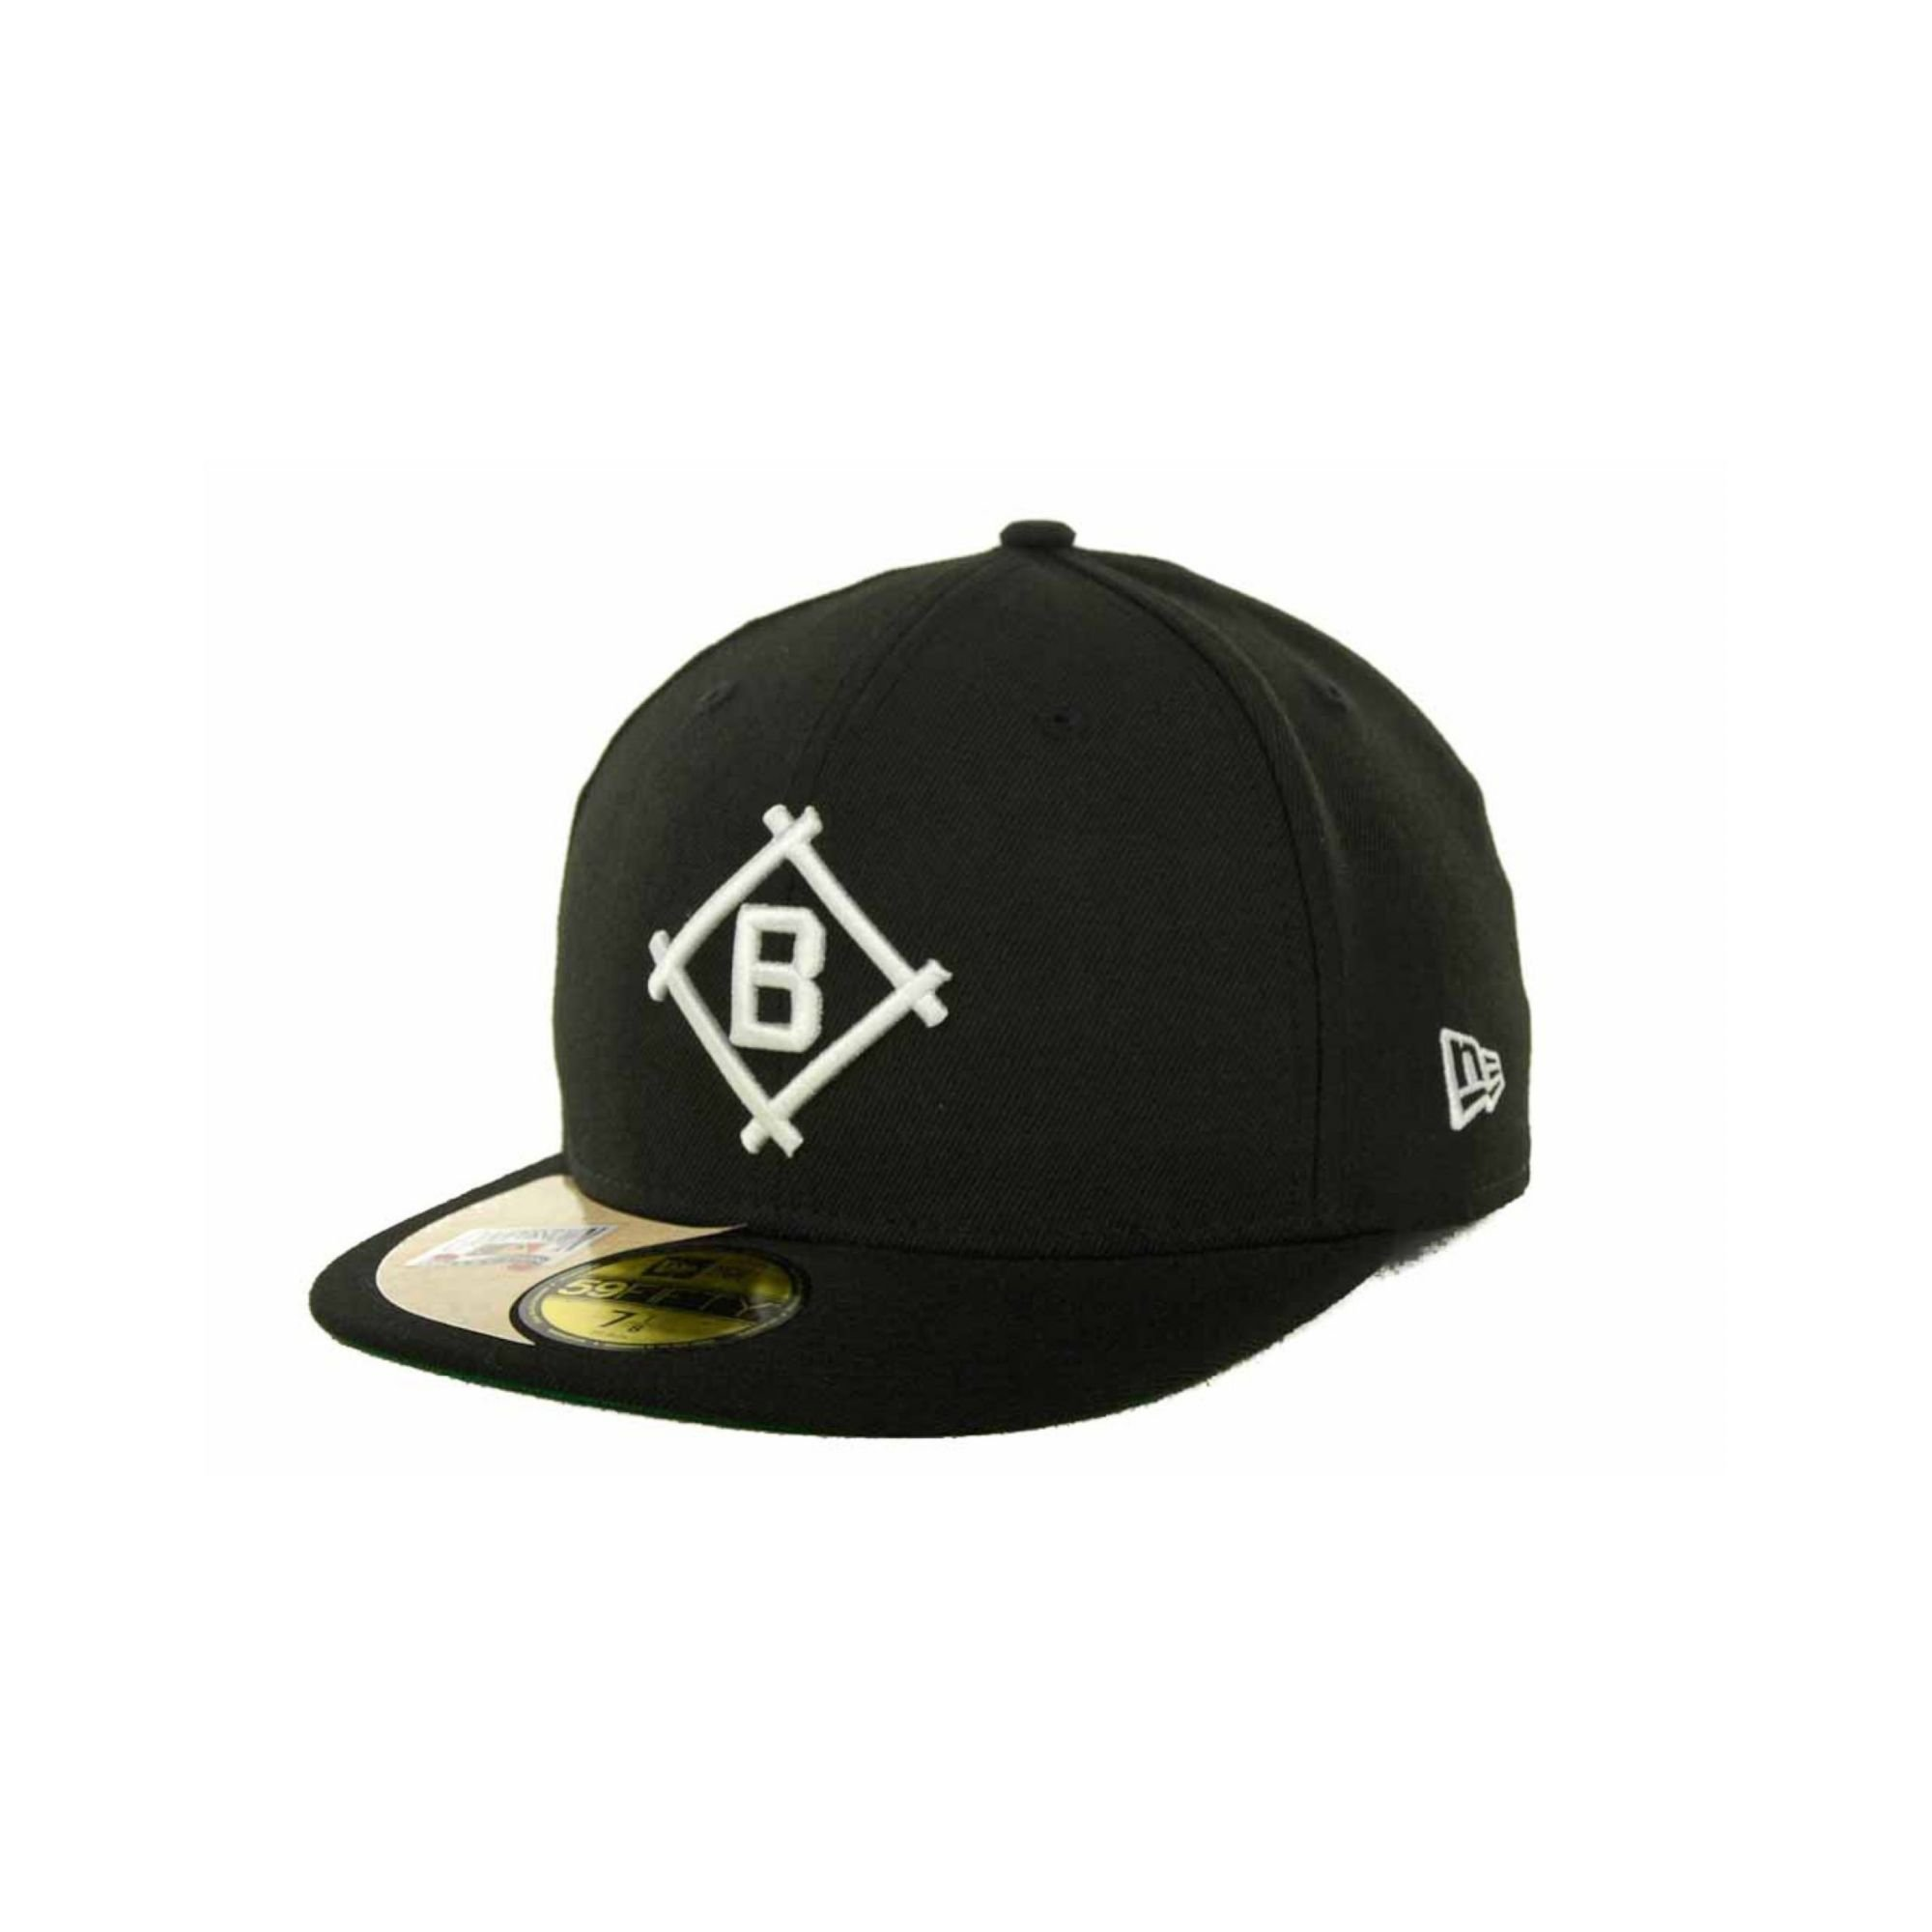 5c6507d0649 Lyst - KTZ Brooklyn Dodgers Cooperstown Patch 59fifty Cap in Black ...